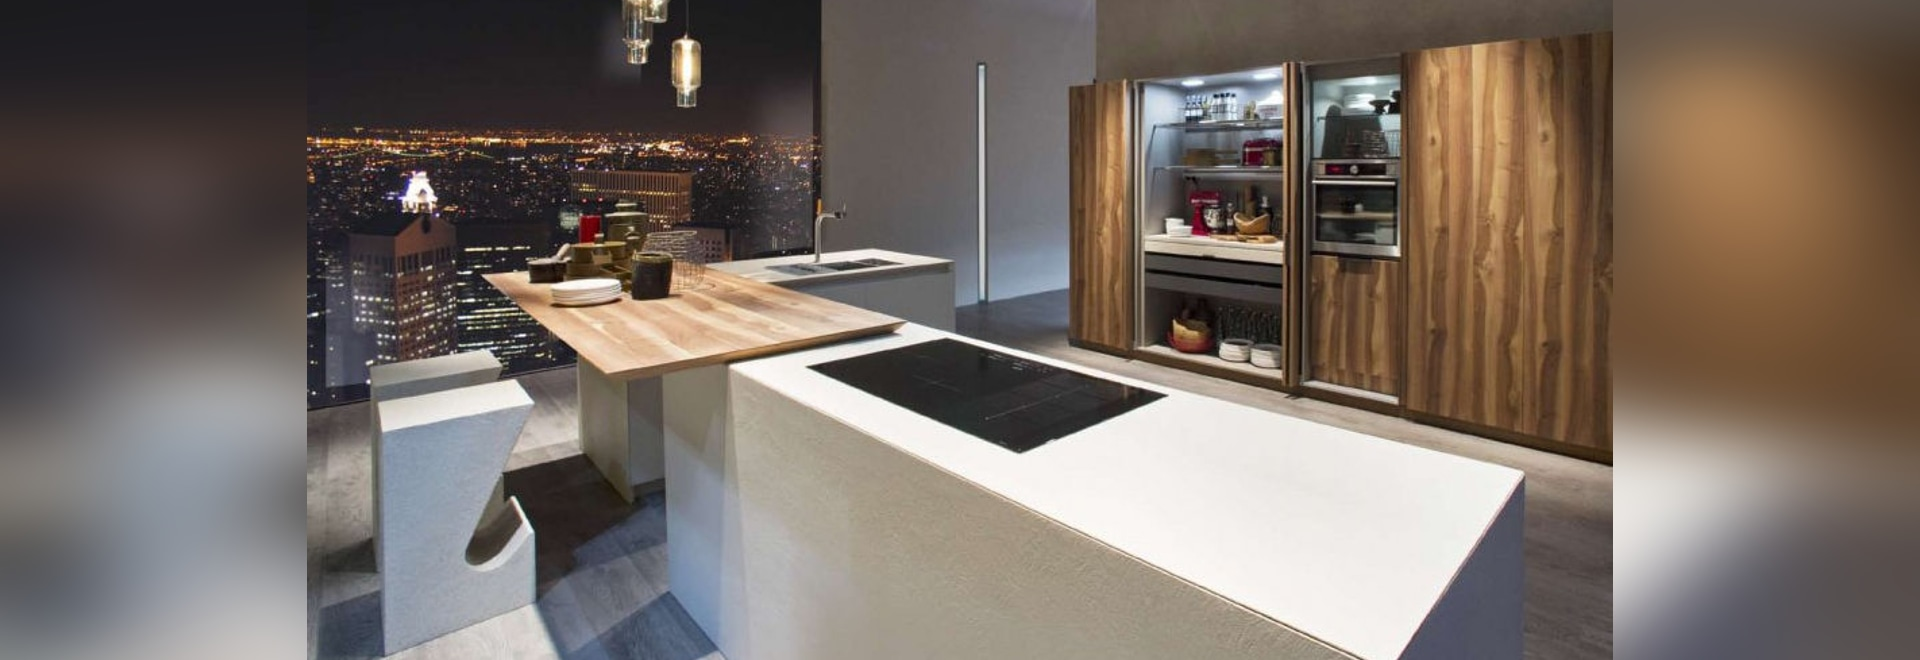 Filoantis kitchen by Euromobil